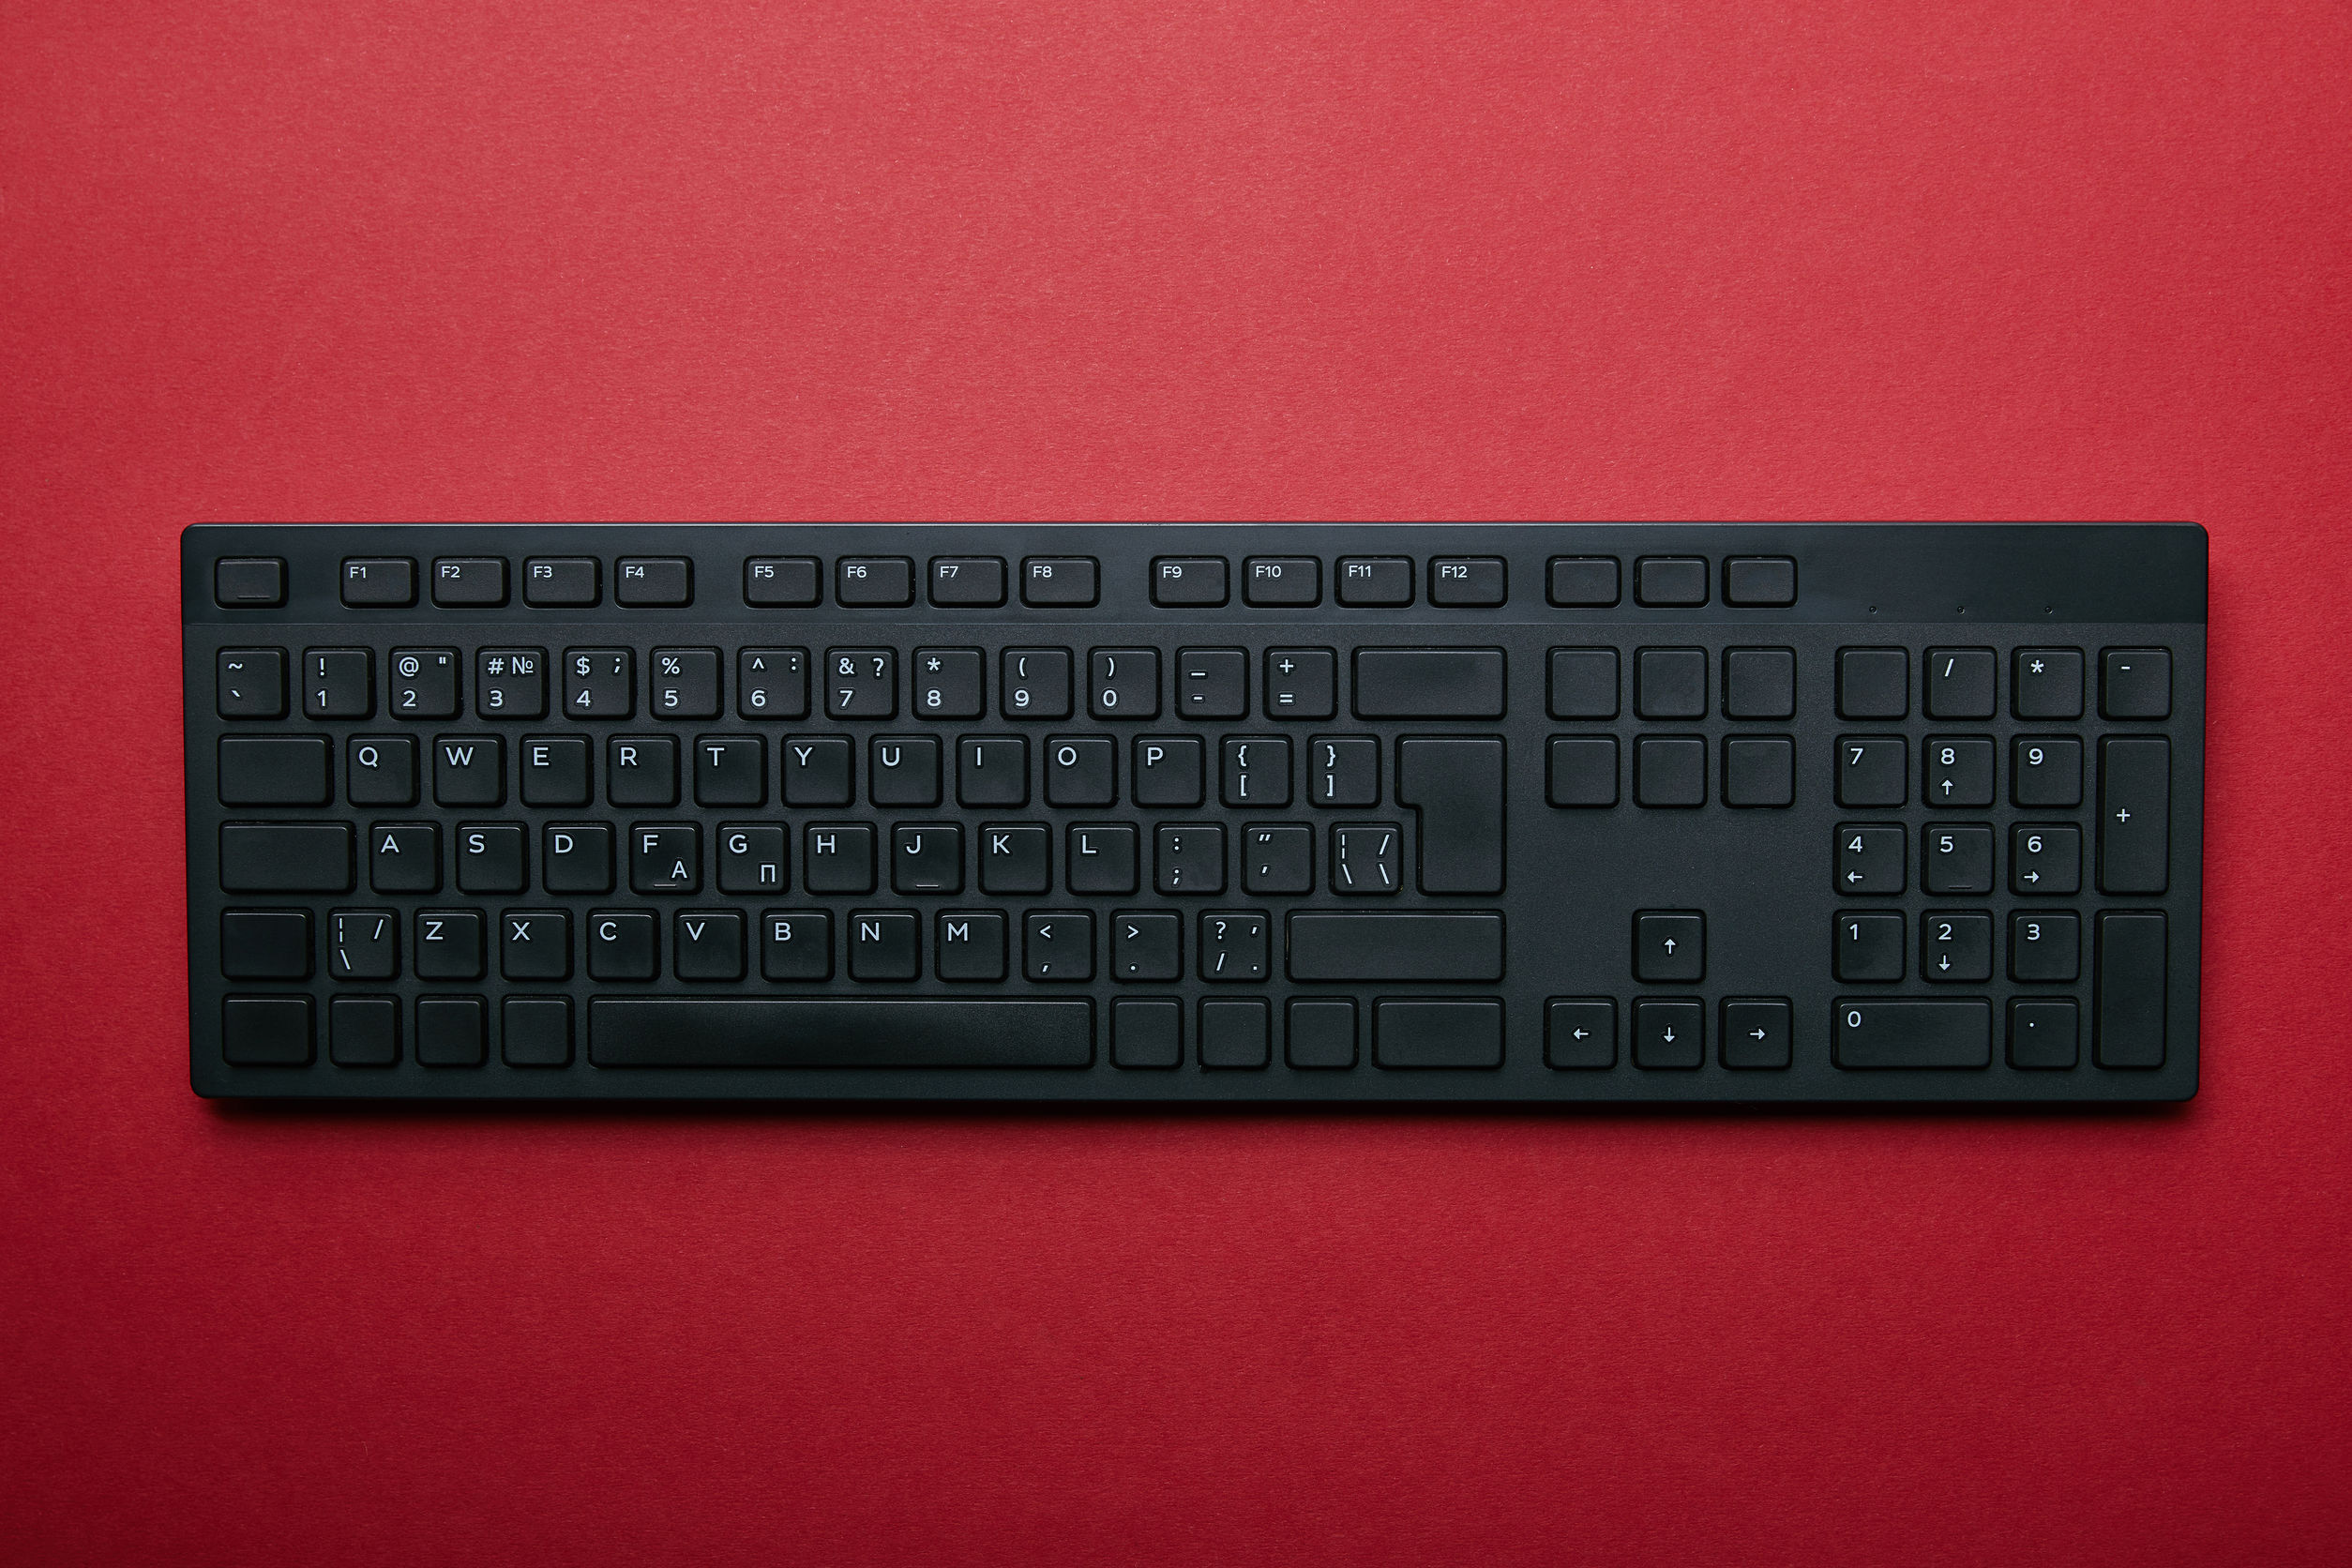 Best Keyboard 2021: Shopping Guide & Review